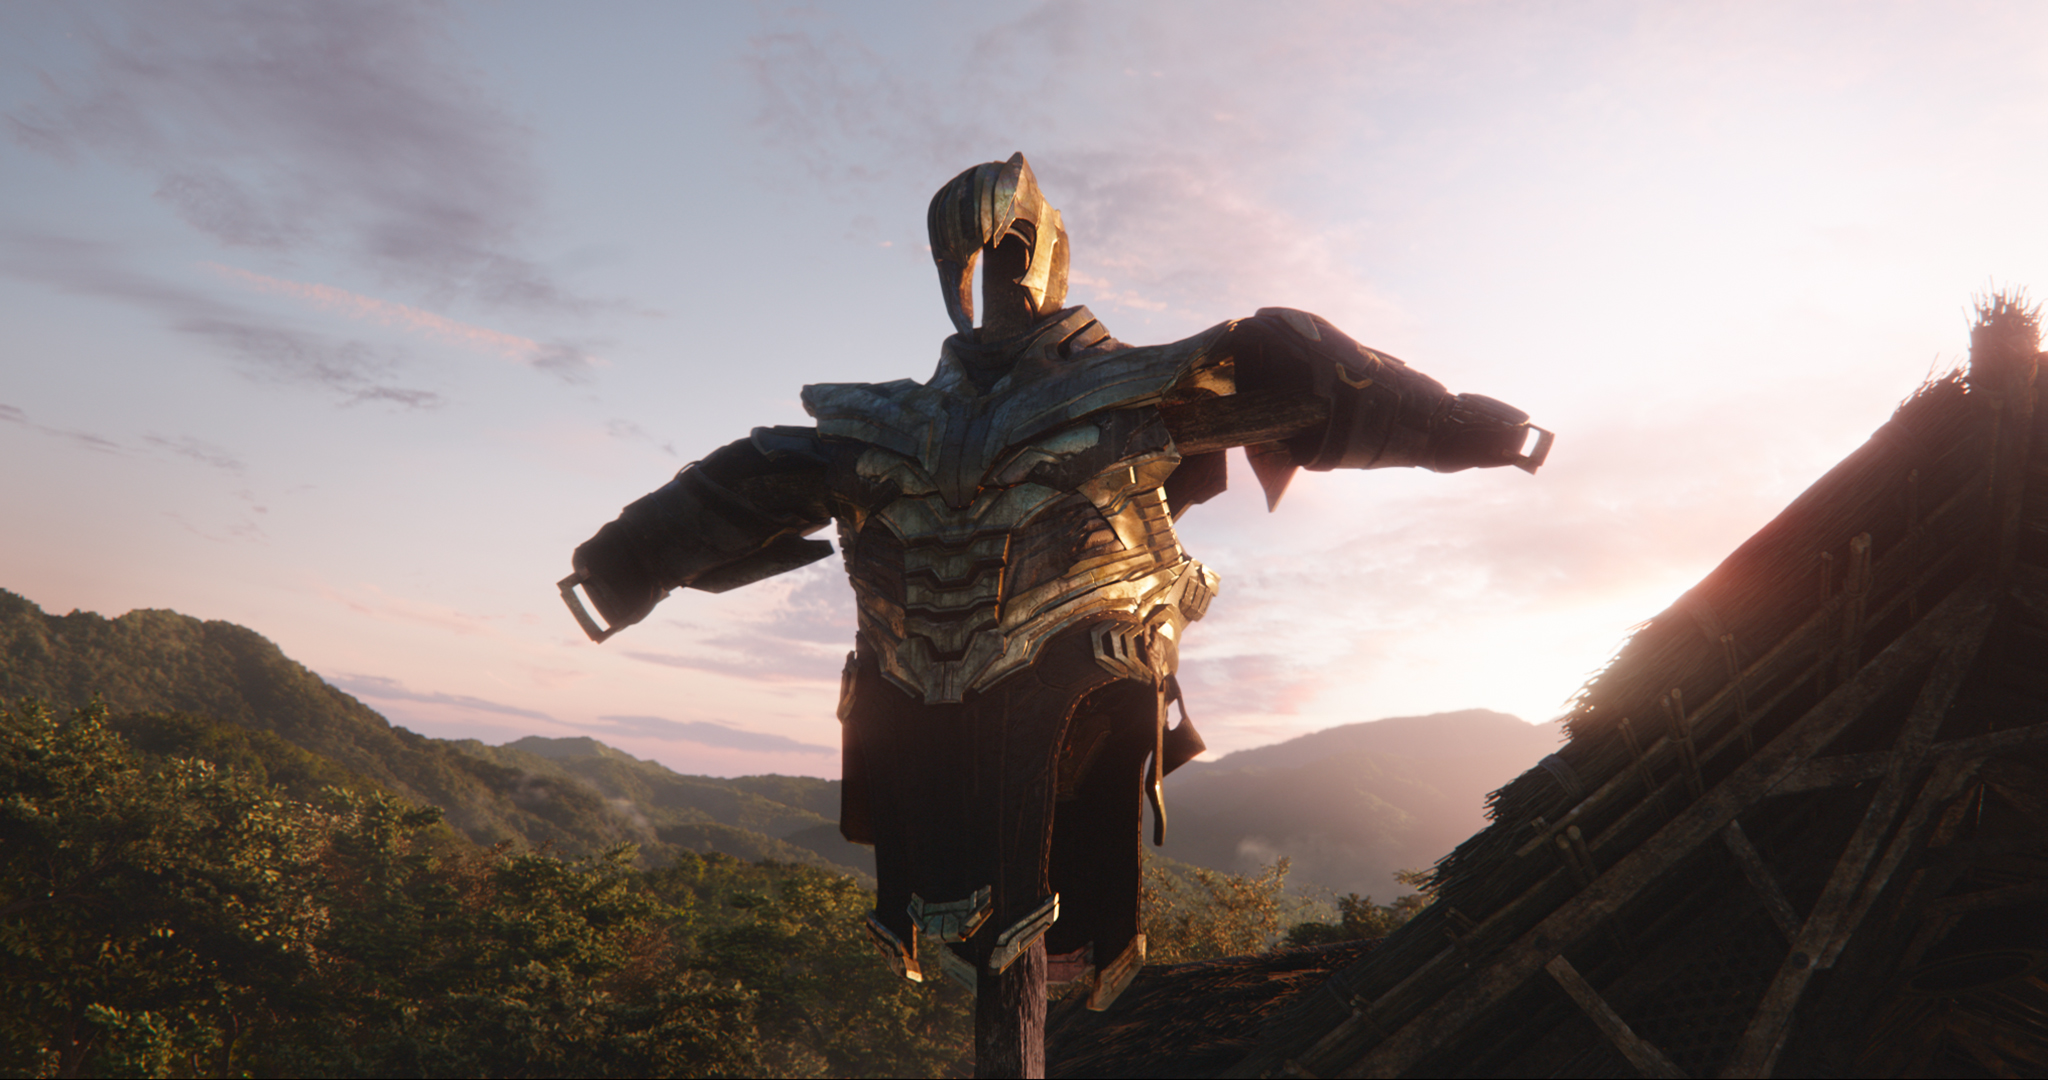 Why are Avengers fans obsessed with Endgame beating Avatar's